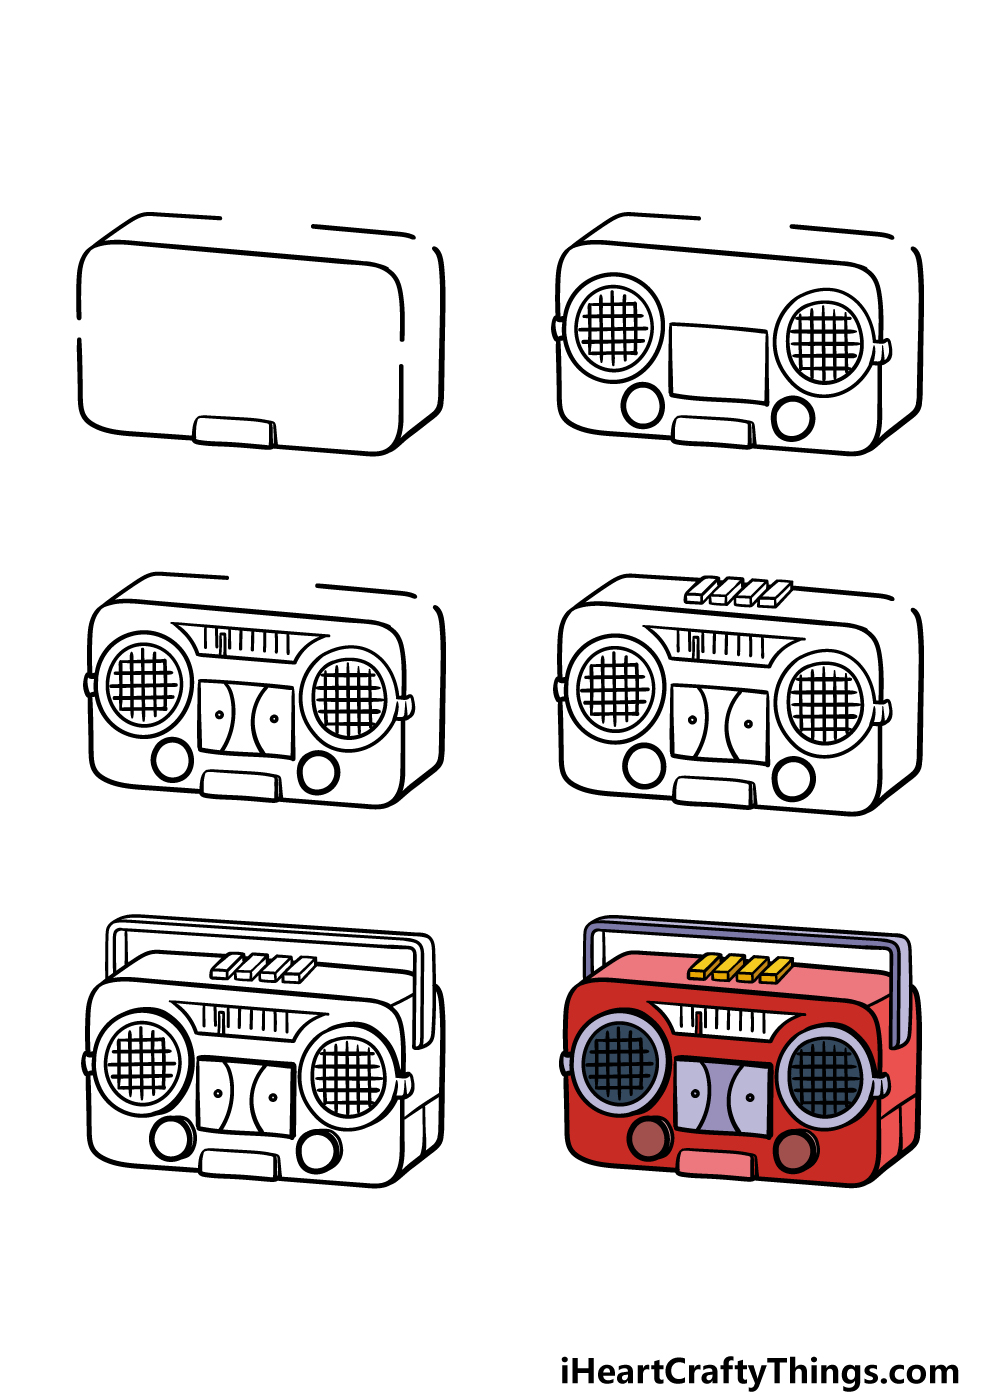 how to draw a radio in 6 steps